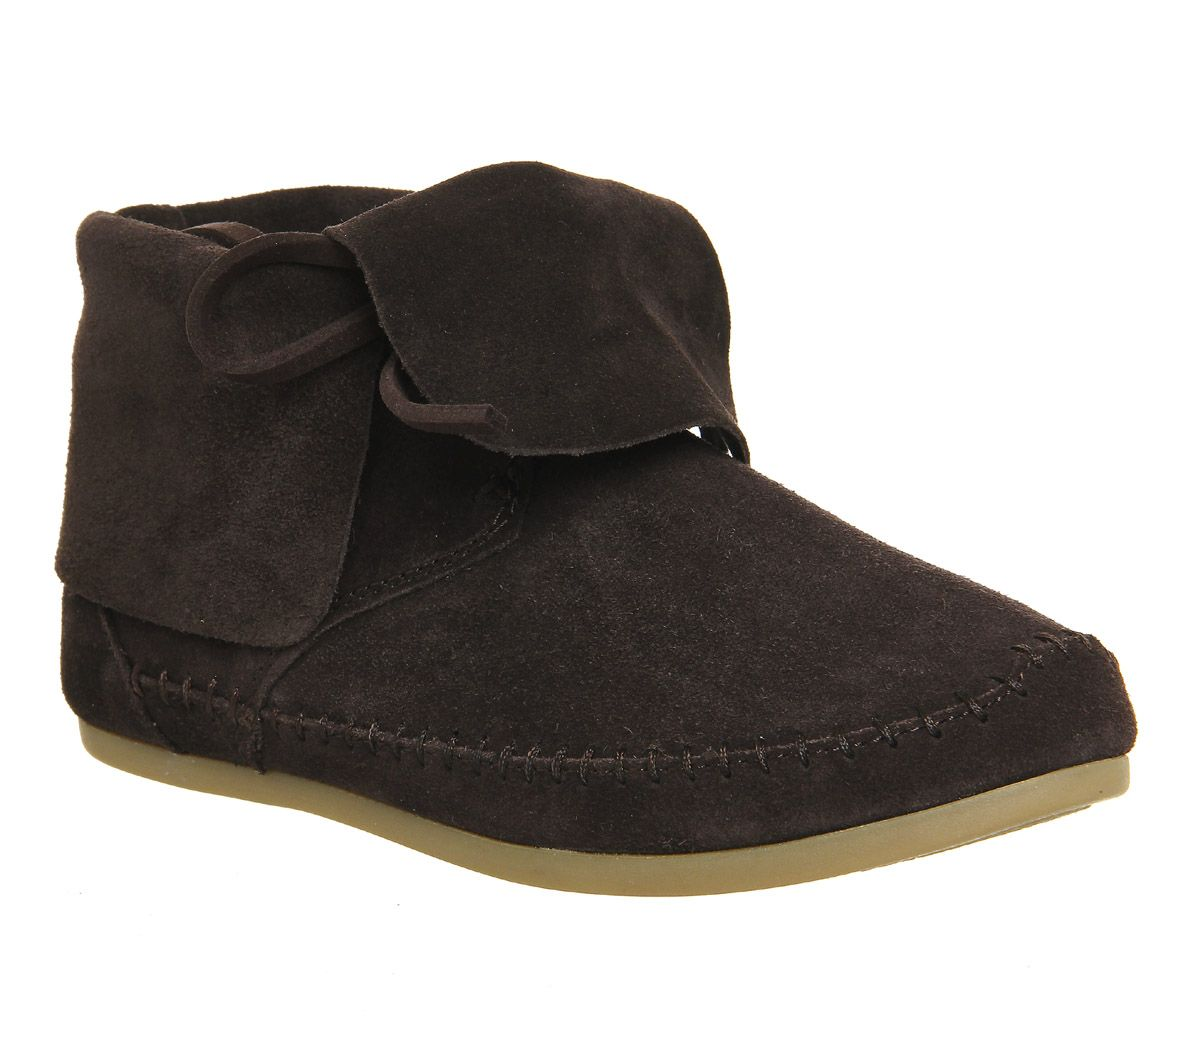 Toms Zahara Bootie Womens Ankle Boots Black Suede